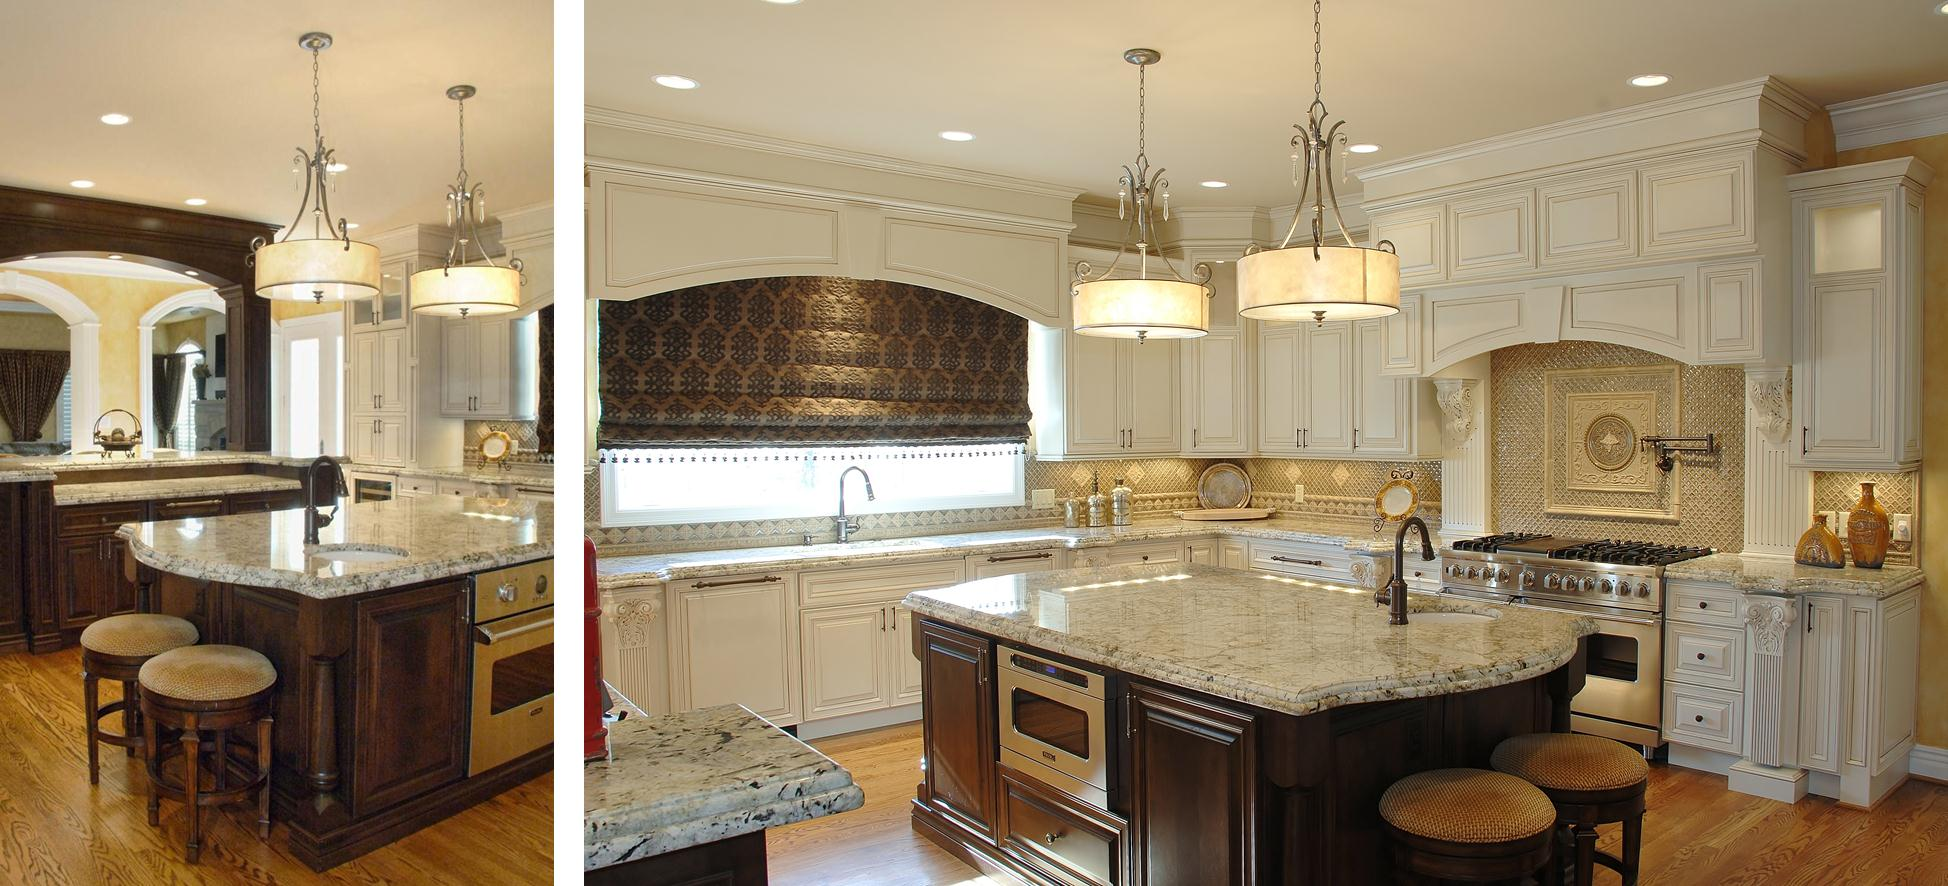 traditional kitchen designs 2013 the new design resulted in a